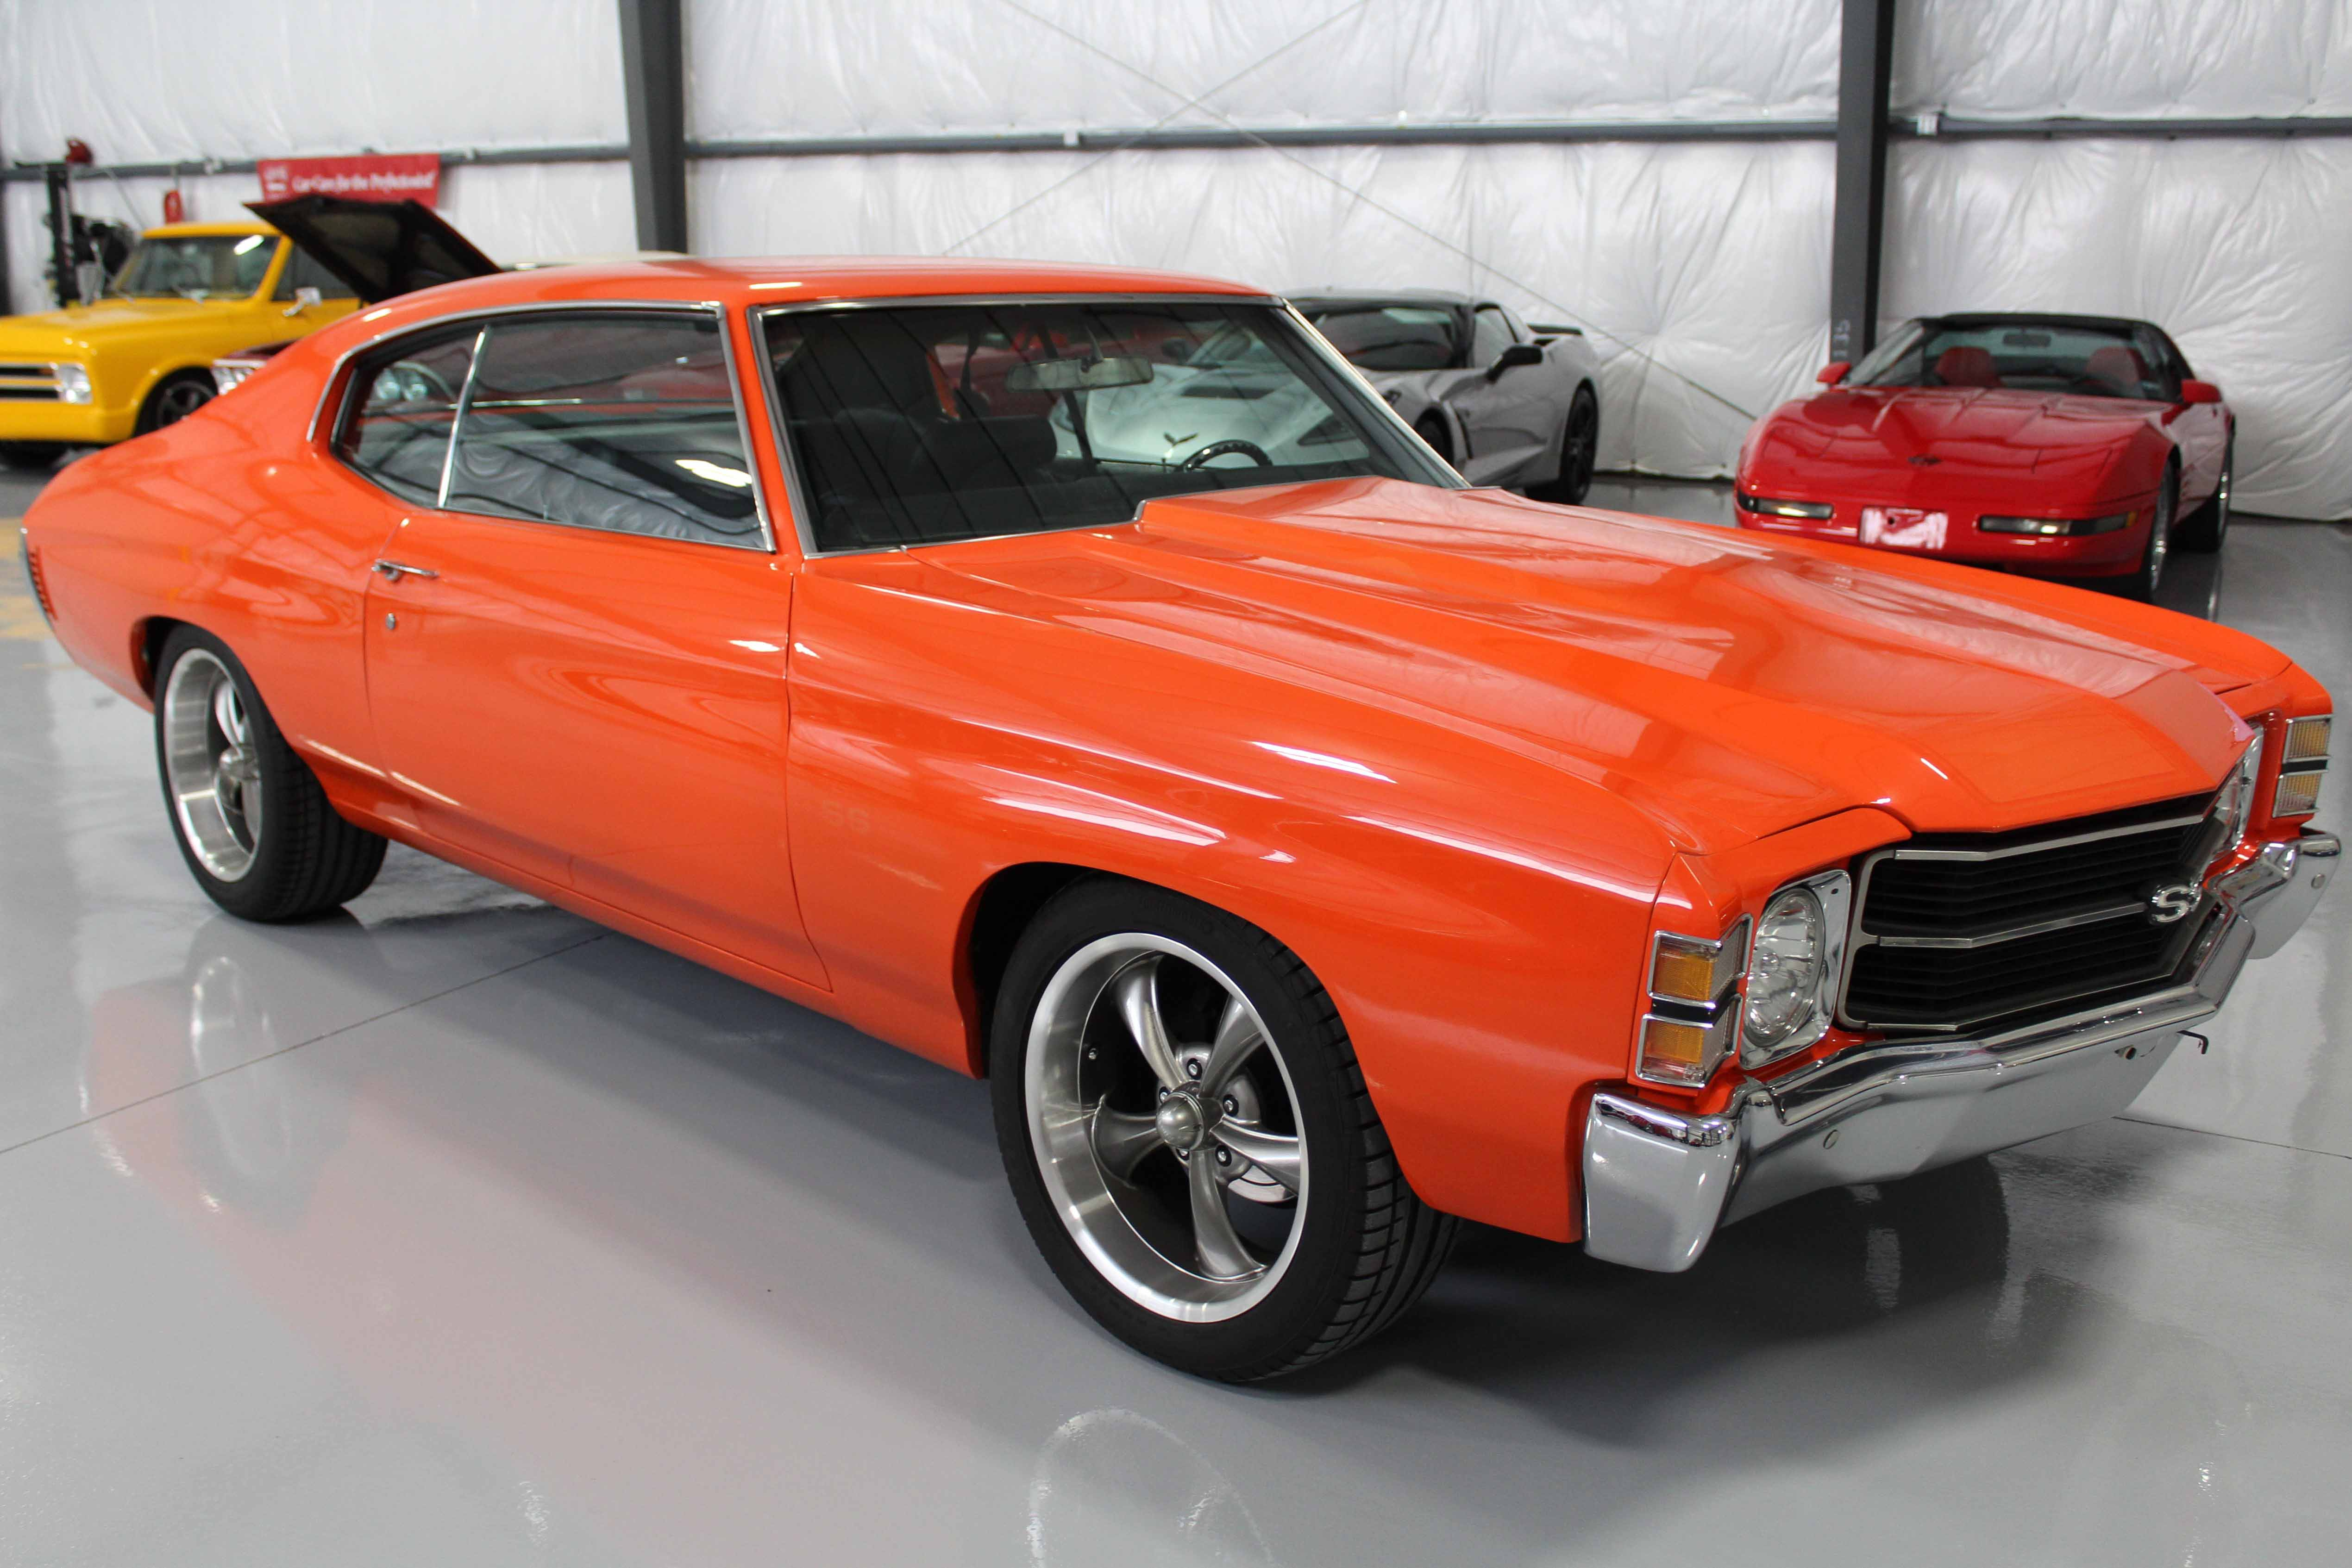 1971 chevrolet chevelle sale collector 39 s paddock houston classic car for sale. Black Bedroom Furniture Sets. Home Design Ideas